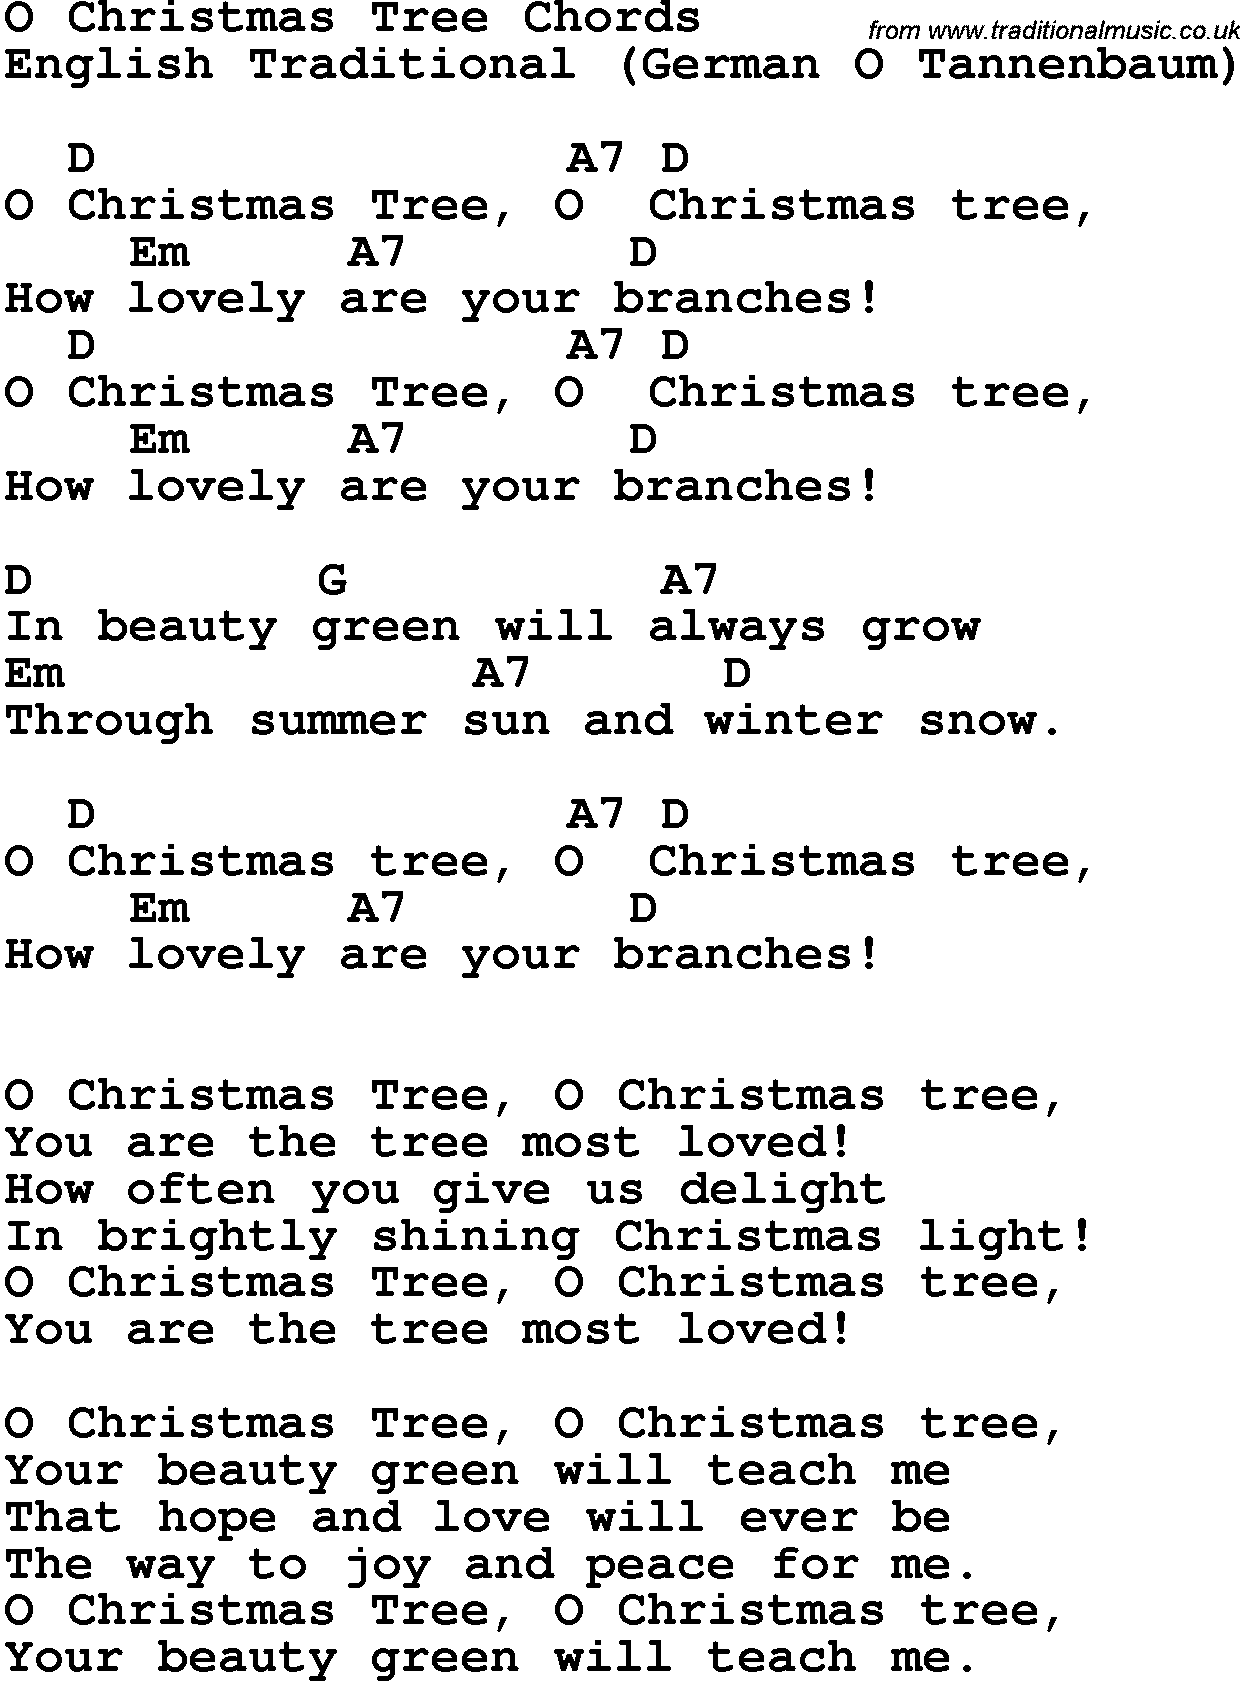 song lyrics with guitar chords for o christmas tree 2 u1hu2eur - Oh Christmas Tree How Lovely Are Your Branches Lyrics